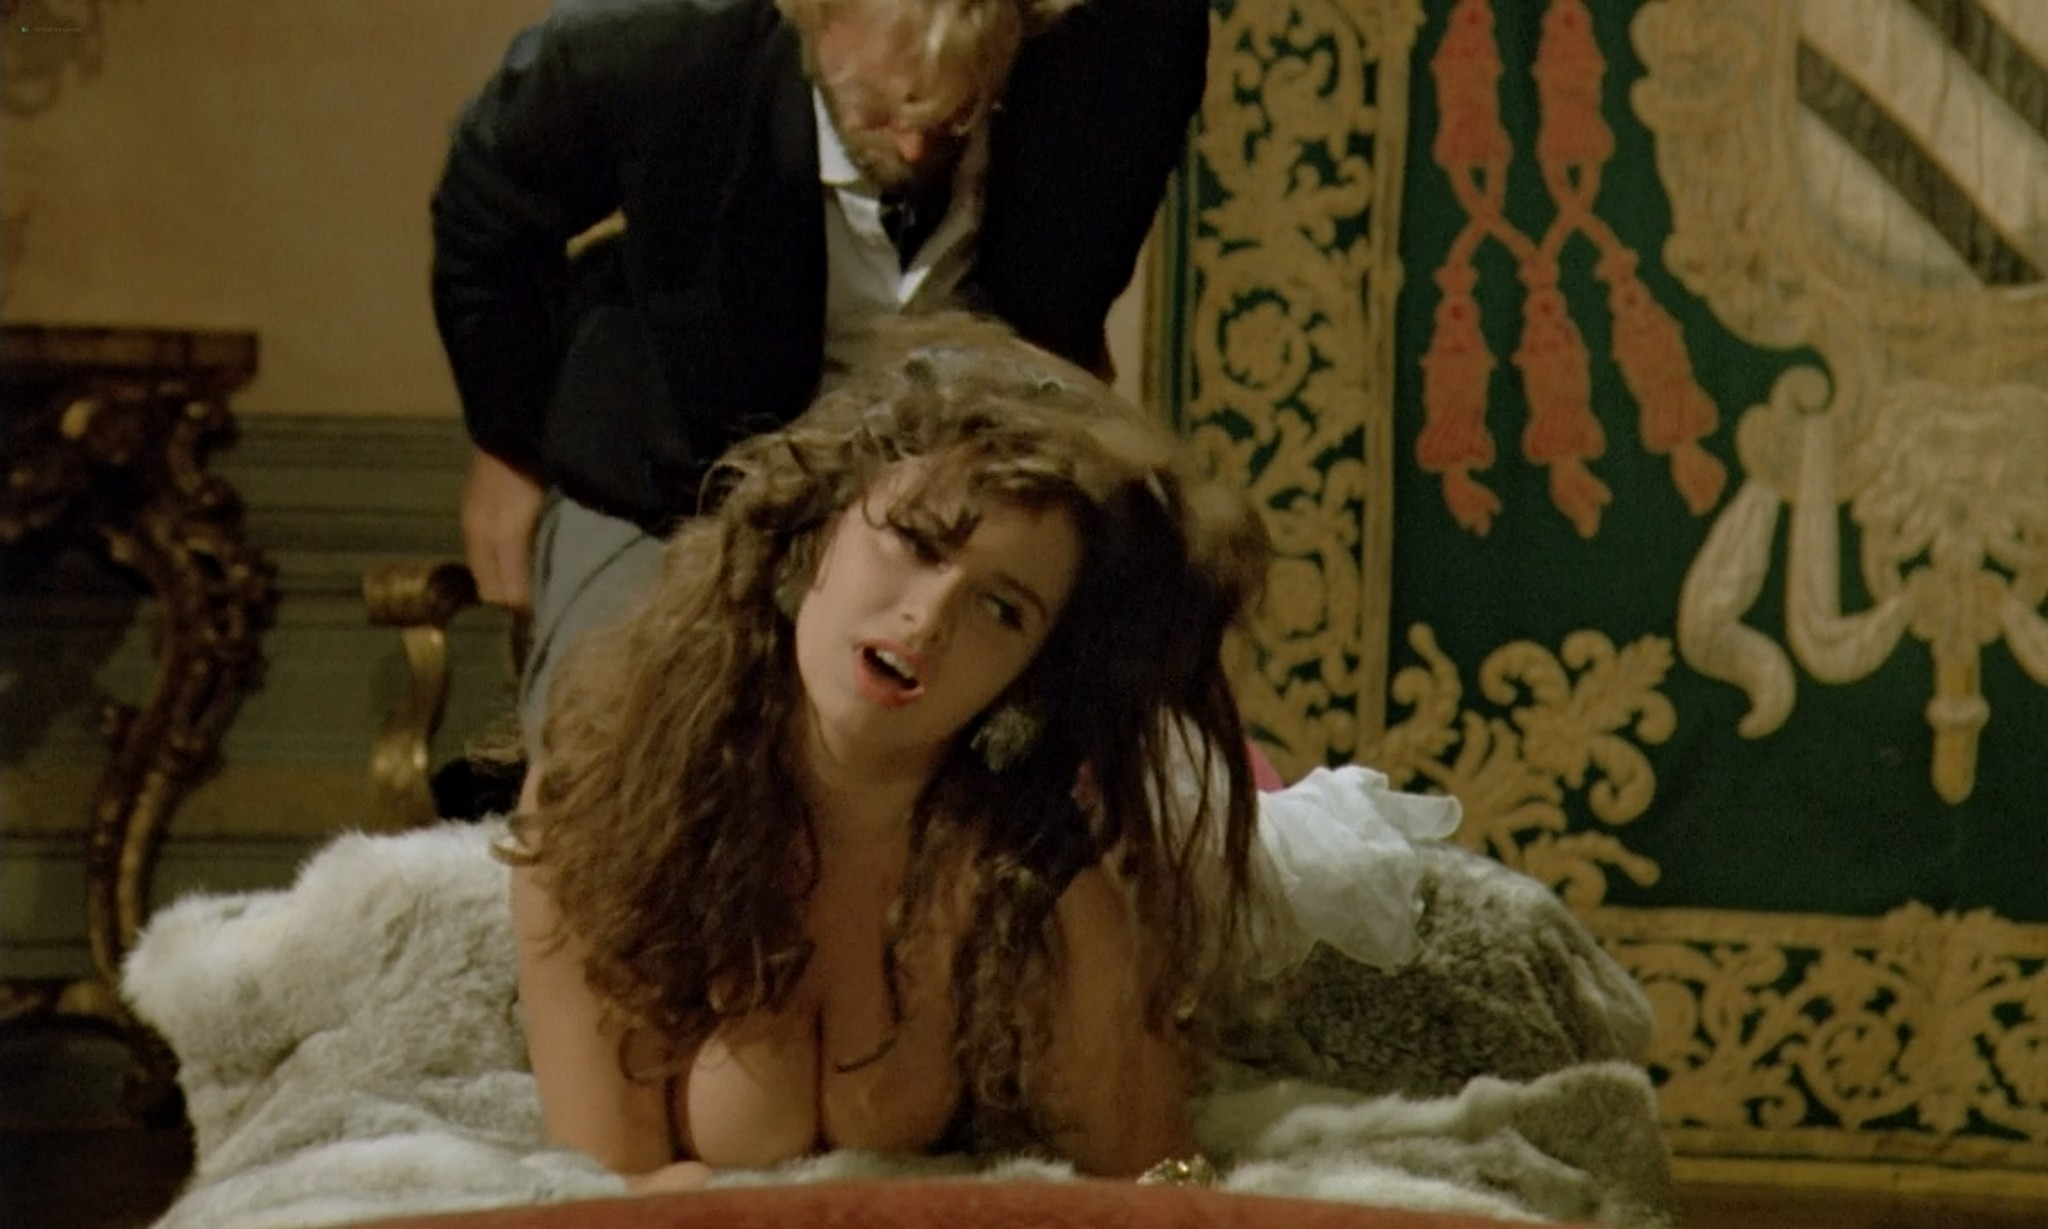 Deborah Caprioglio and others nude full frontal pussy and explicit Paprika IT 1991 720p BluRay 17